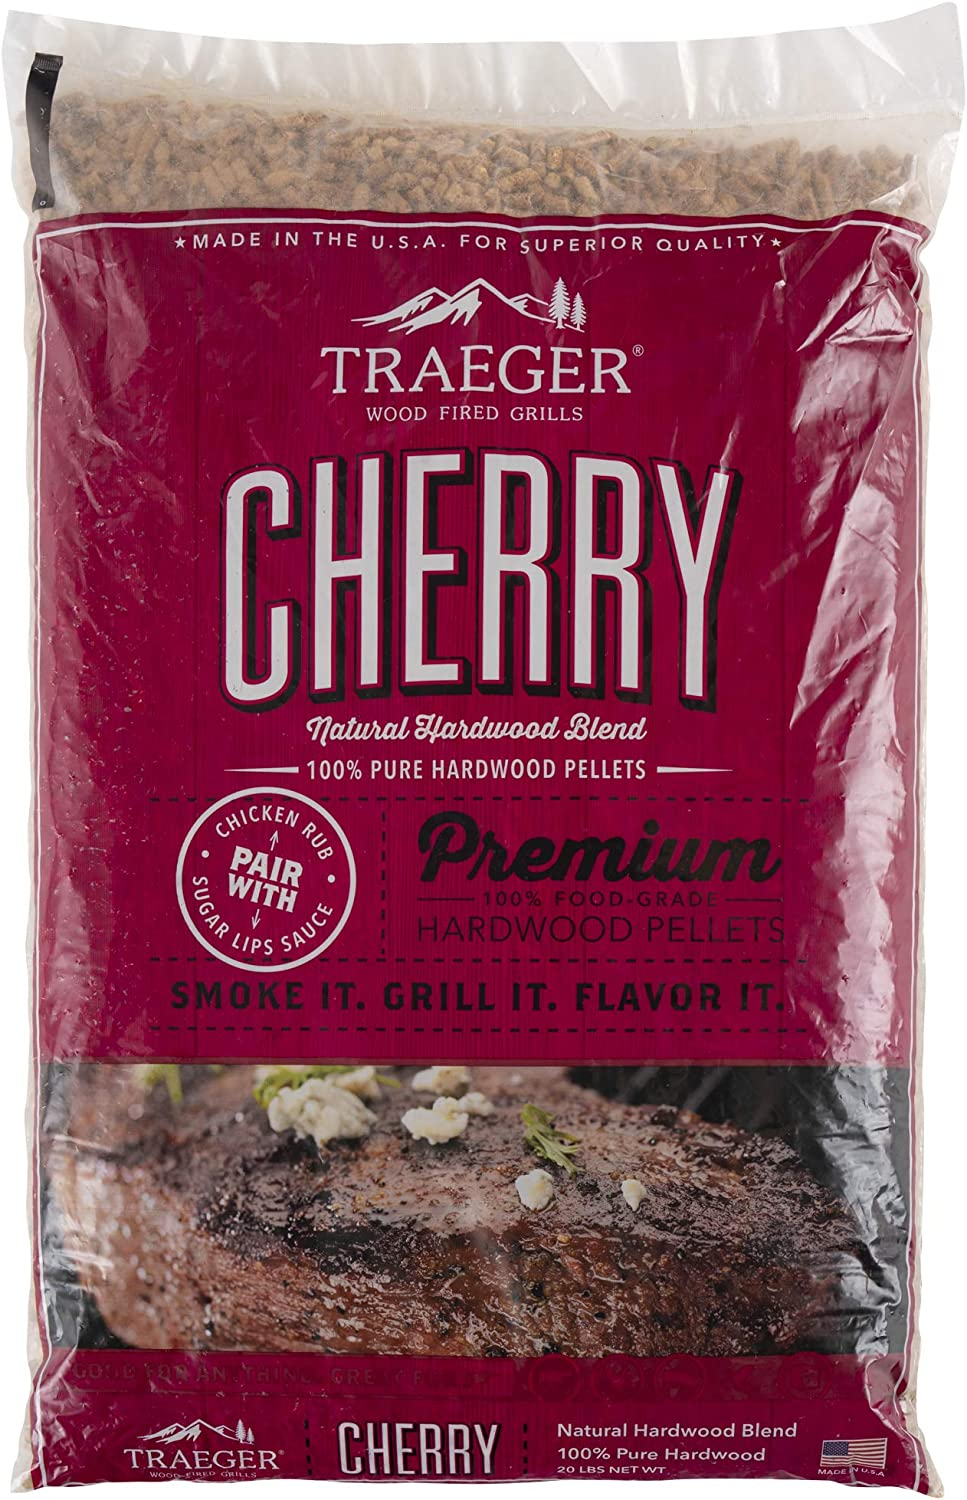 Traeger Grills PEL309 Cherry 100% All-Natural Hardwood Pellets Grill, Smoke, Bake, Roast, Braise and BBQ, 20 lb. Bag : Outdoor Grilling Pellets : Garden & Outdoor